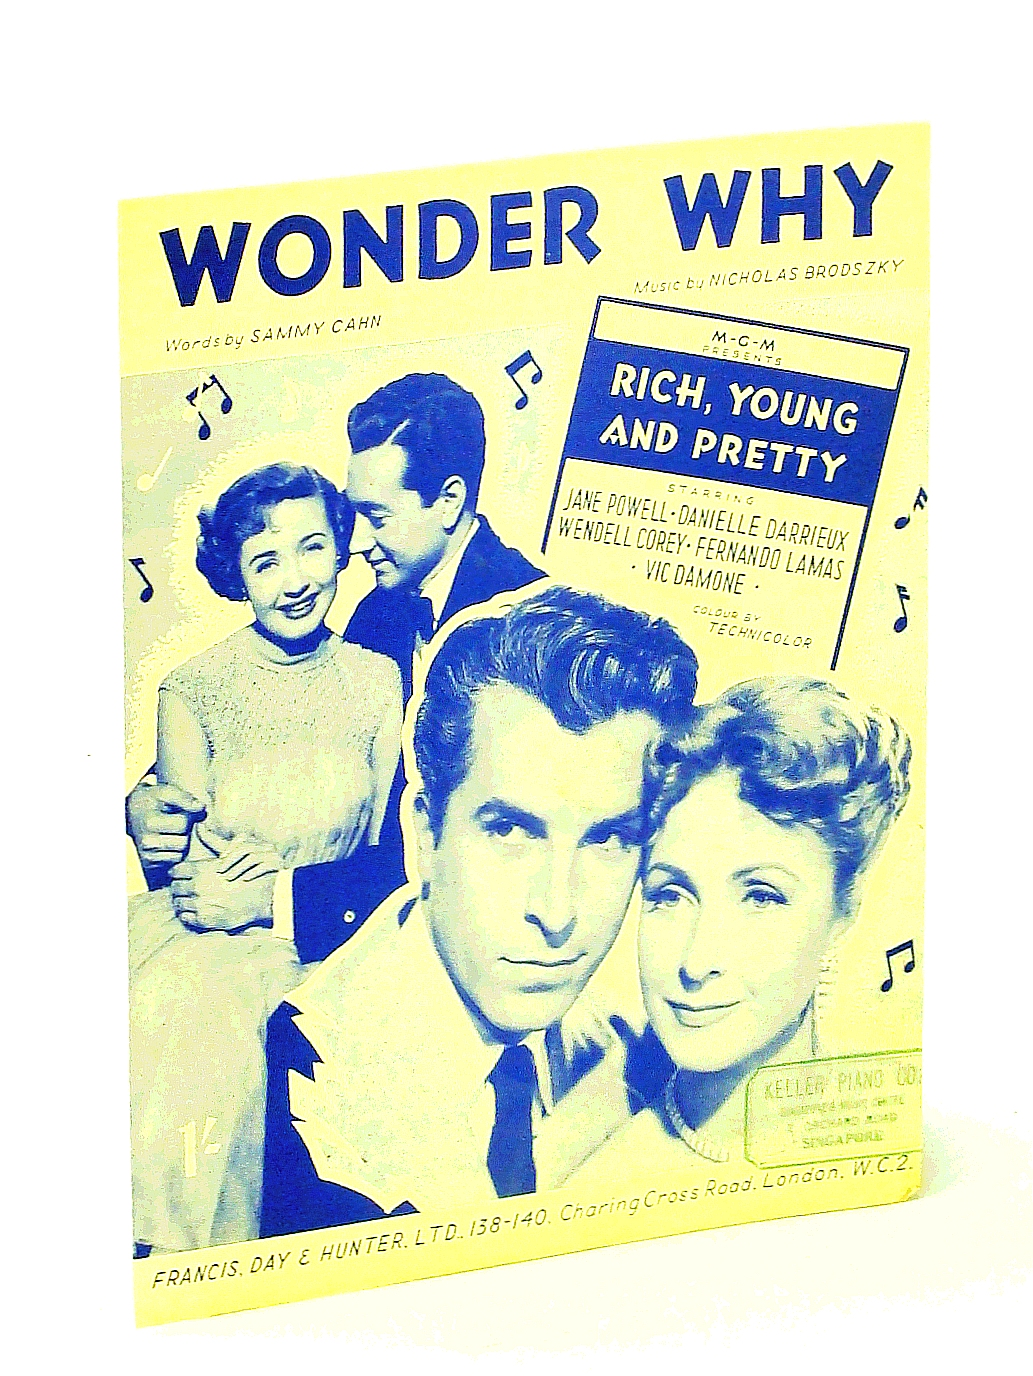 Image for Wonder Why - Sheet Music for Voice and Piano with Ukulele Chords - Cover Photo of Stars from the MGM Movie 'Rich, Young and Pretty'